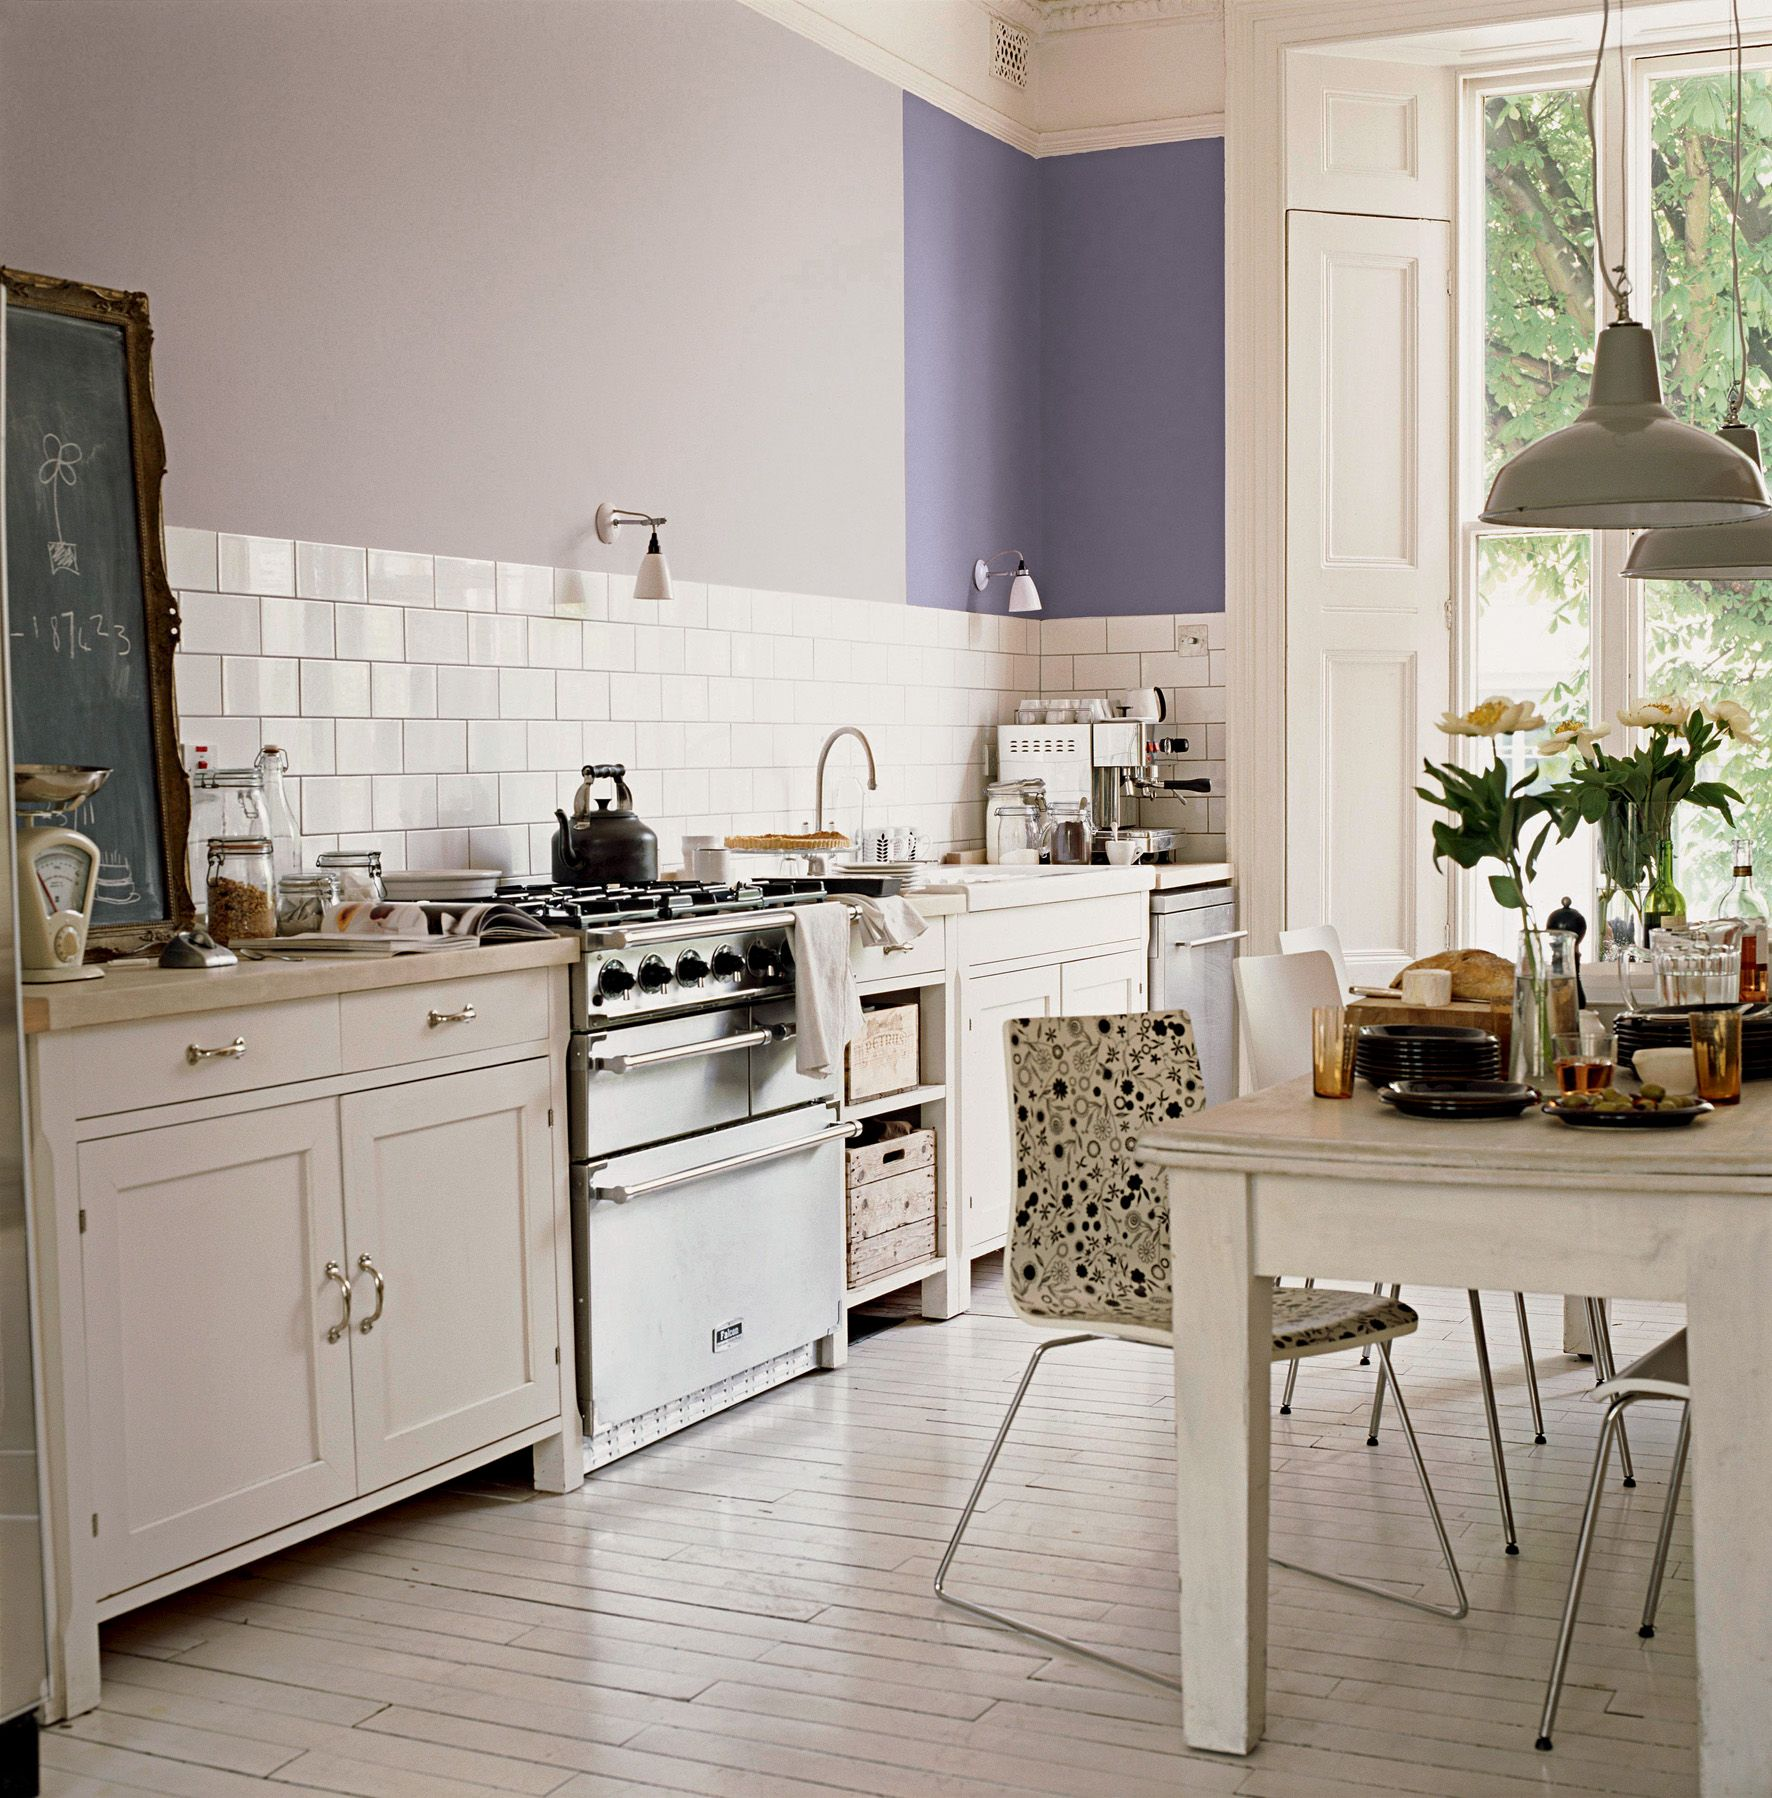 3 Colors Option For Country Kitchen Wallpaper: Crown Kitchen And Bathroom Paint In Periwinkle